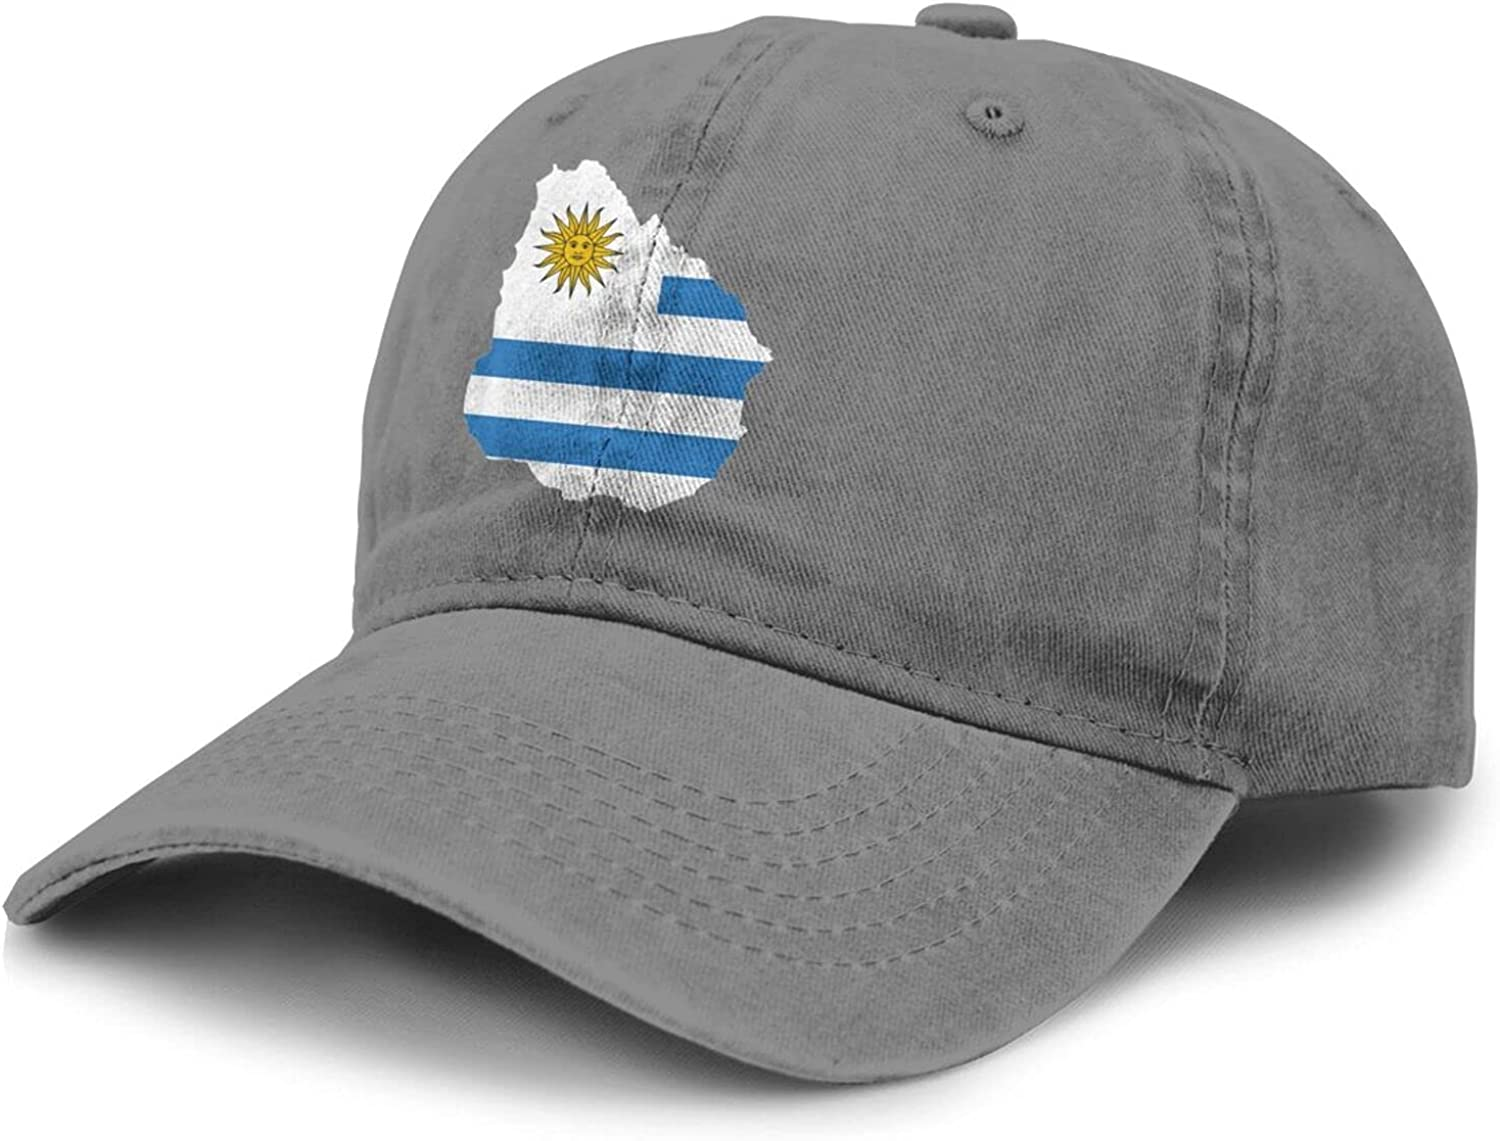 PARKNOTES Uruguay Flag Country of Cheap America Durable and Adul Max 52% OFF San Francisco Mall